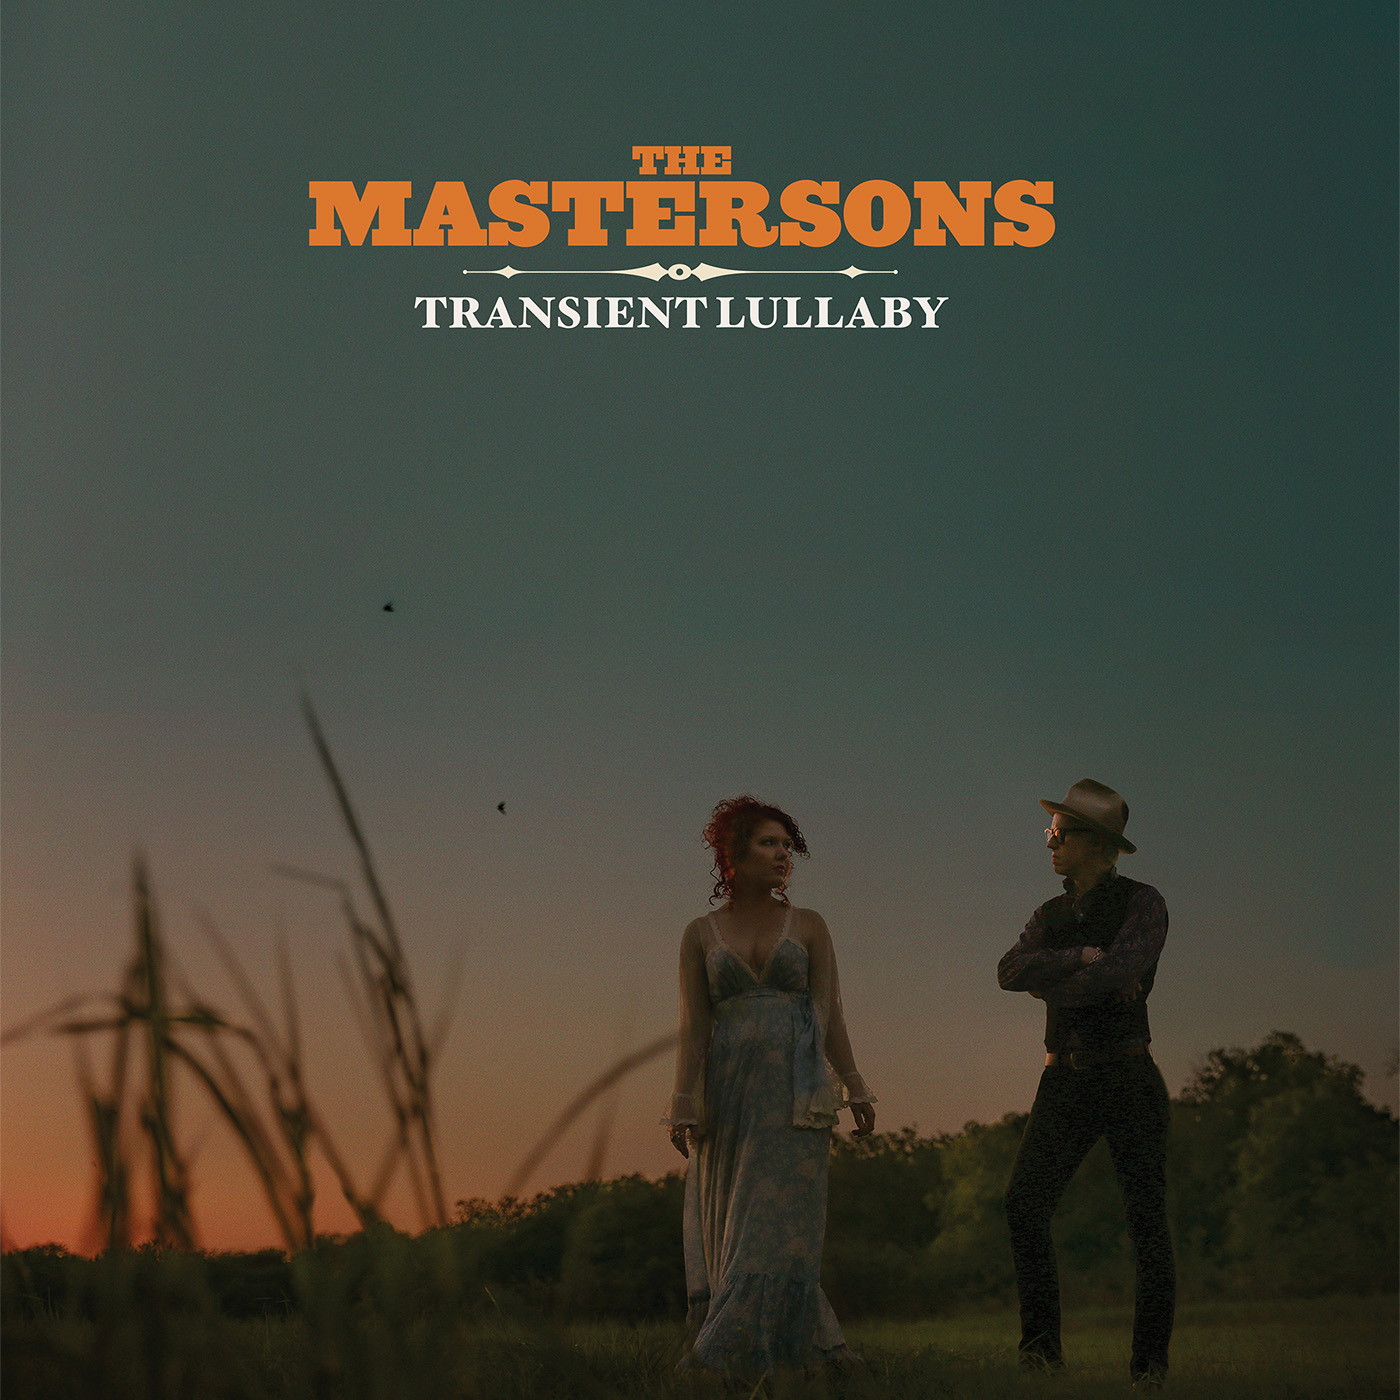 OUT MAY 19: The Mastersons, 'Transient Lullaby'